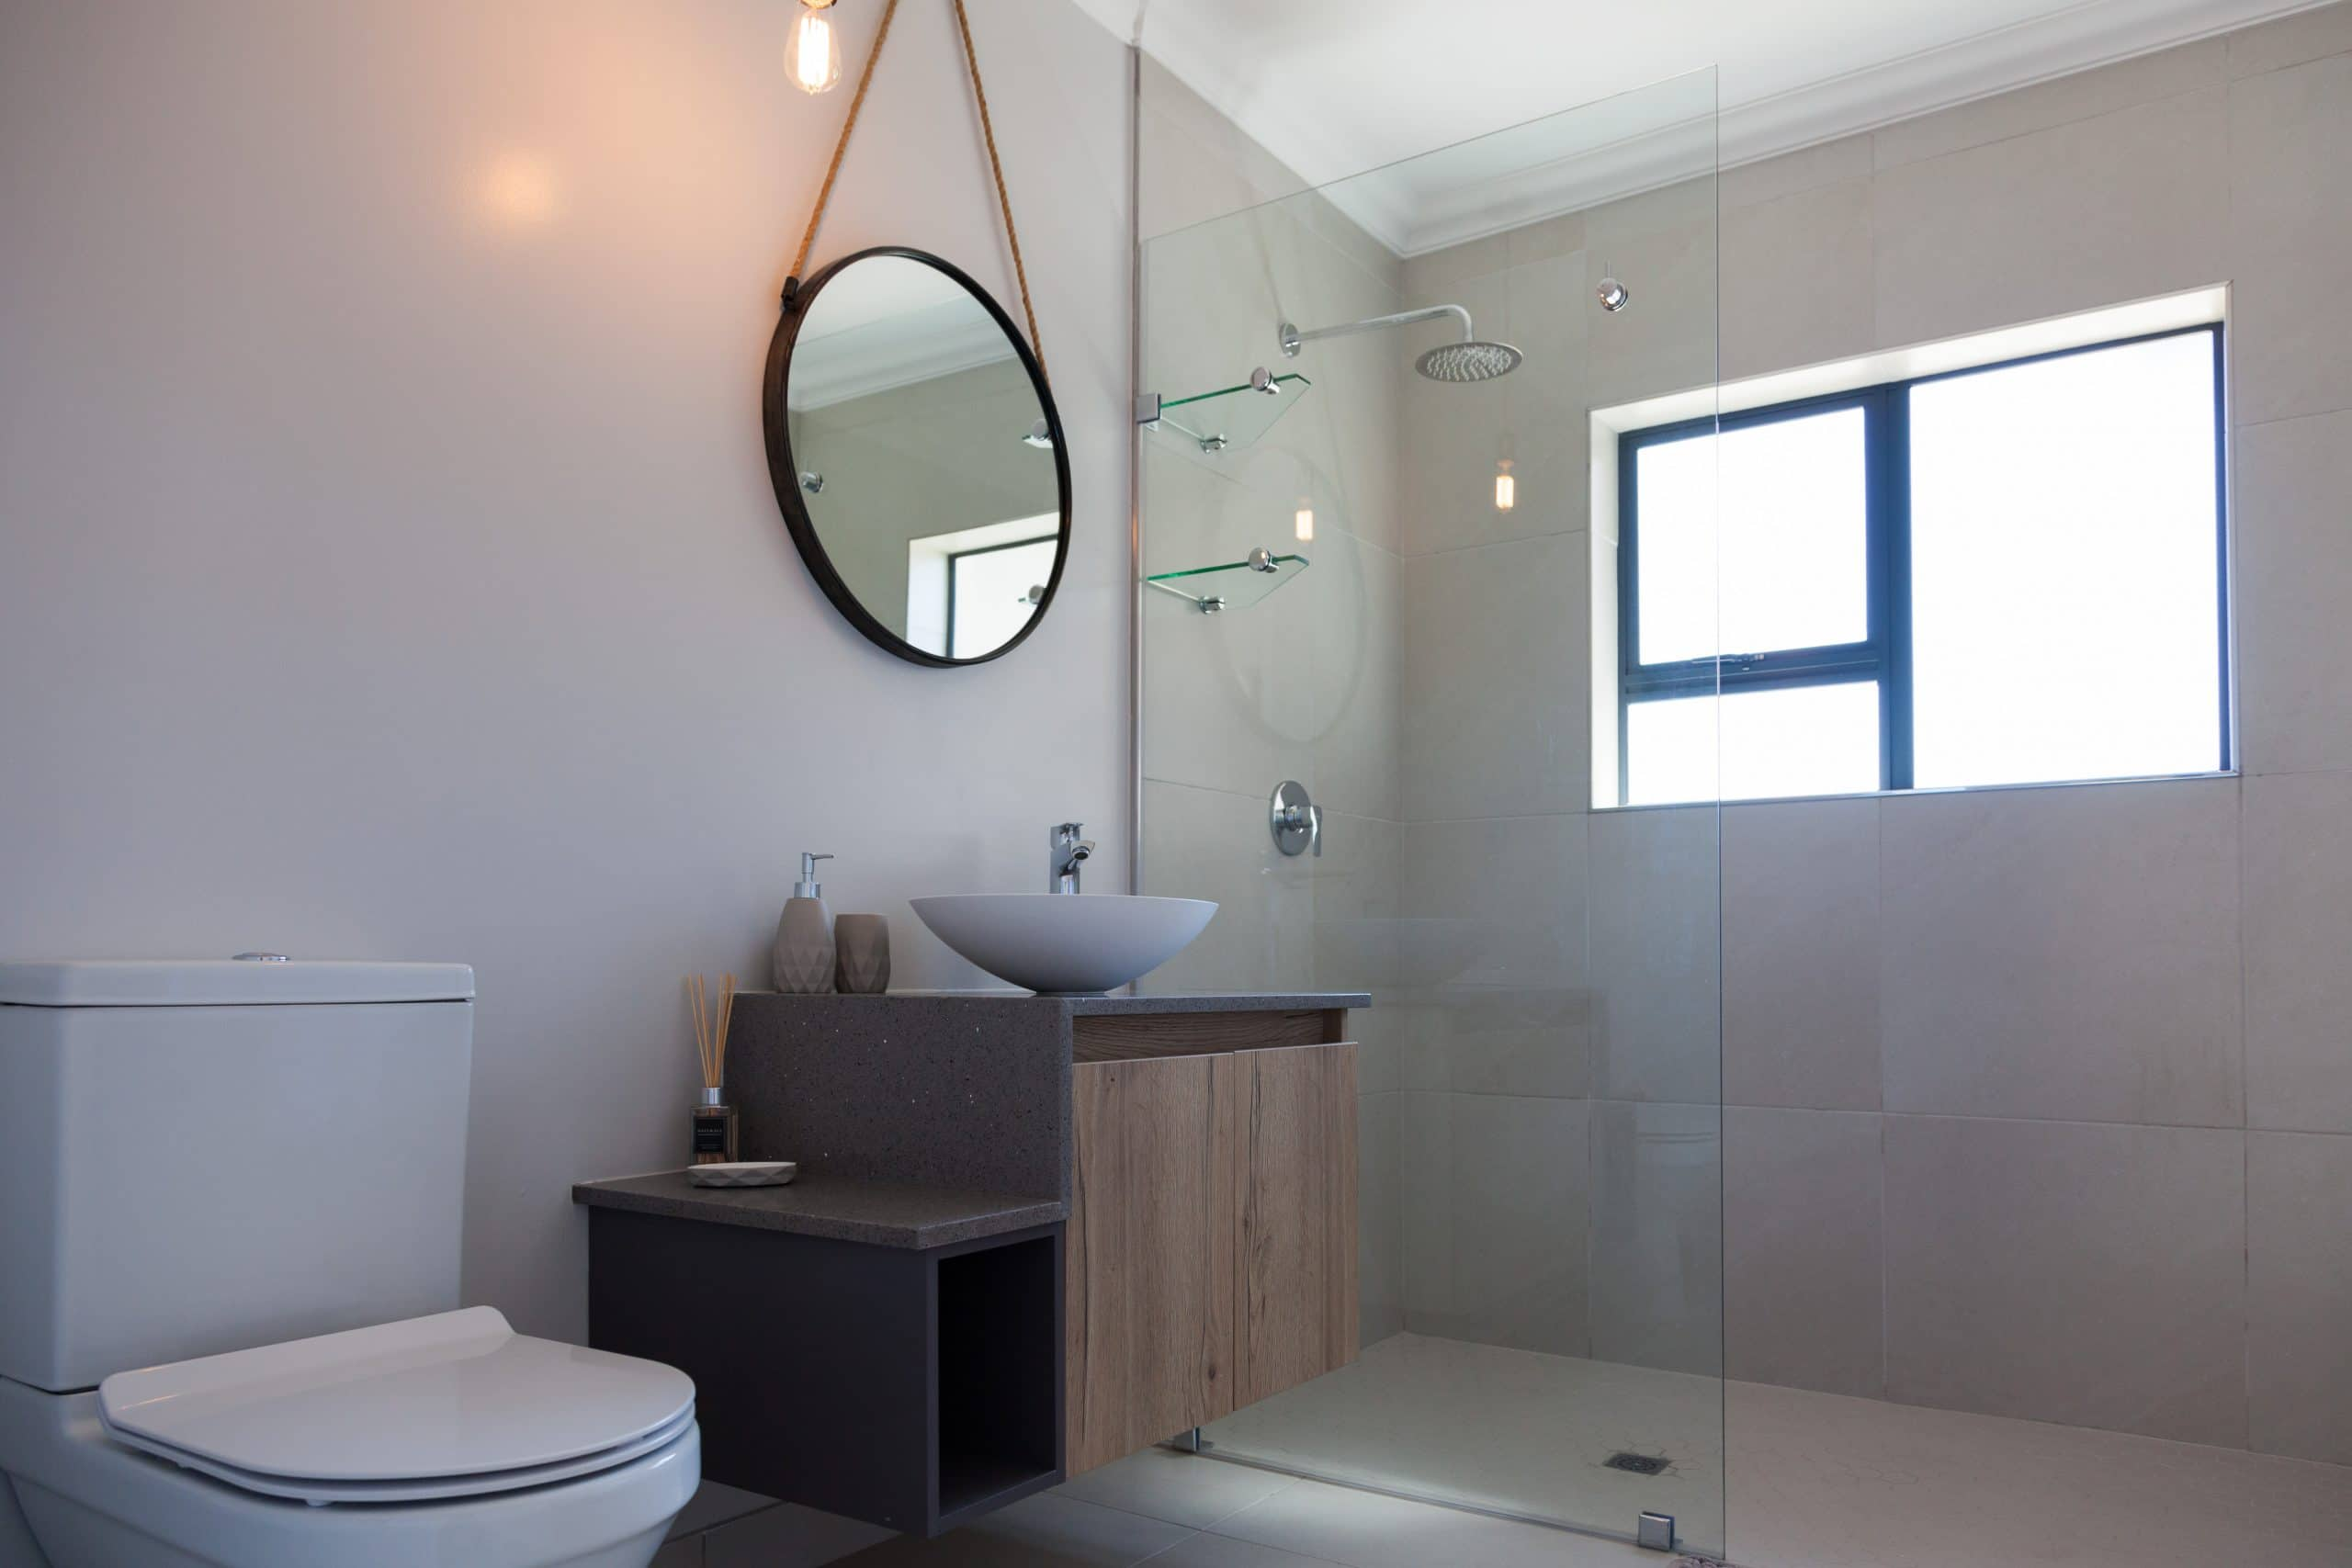 modern vanity design with round mirror and frame less shower panels